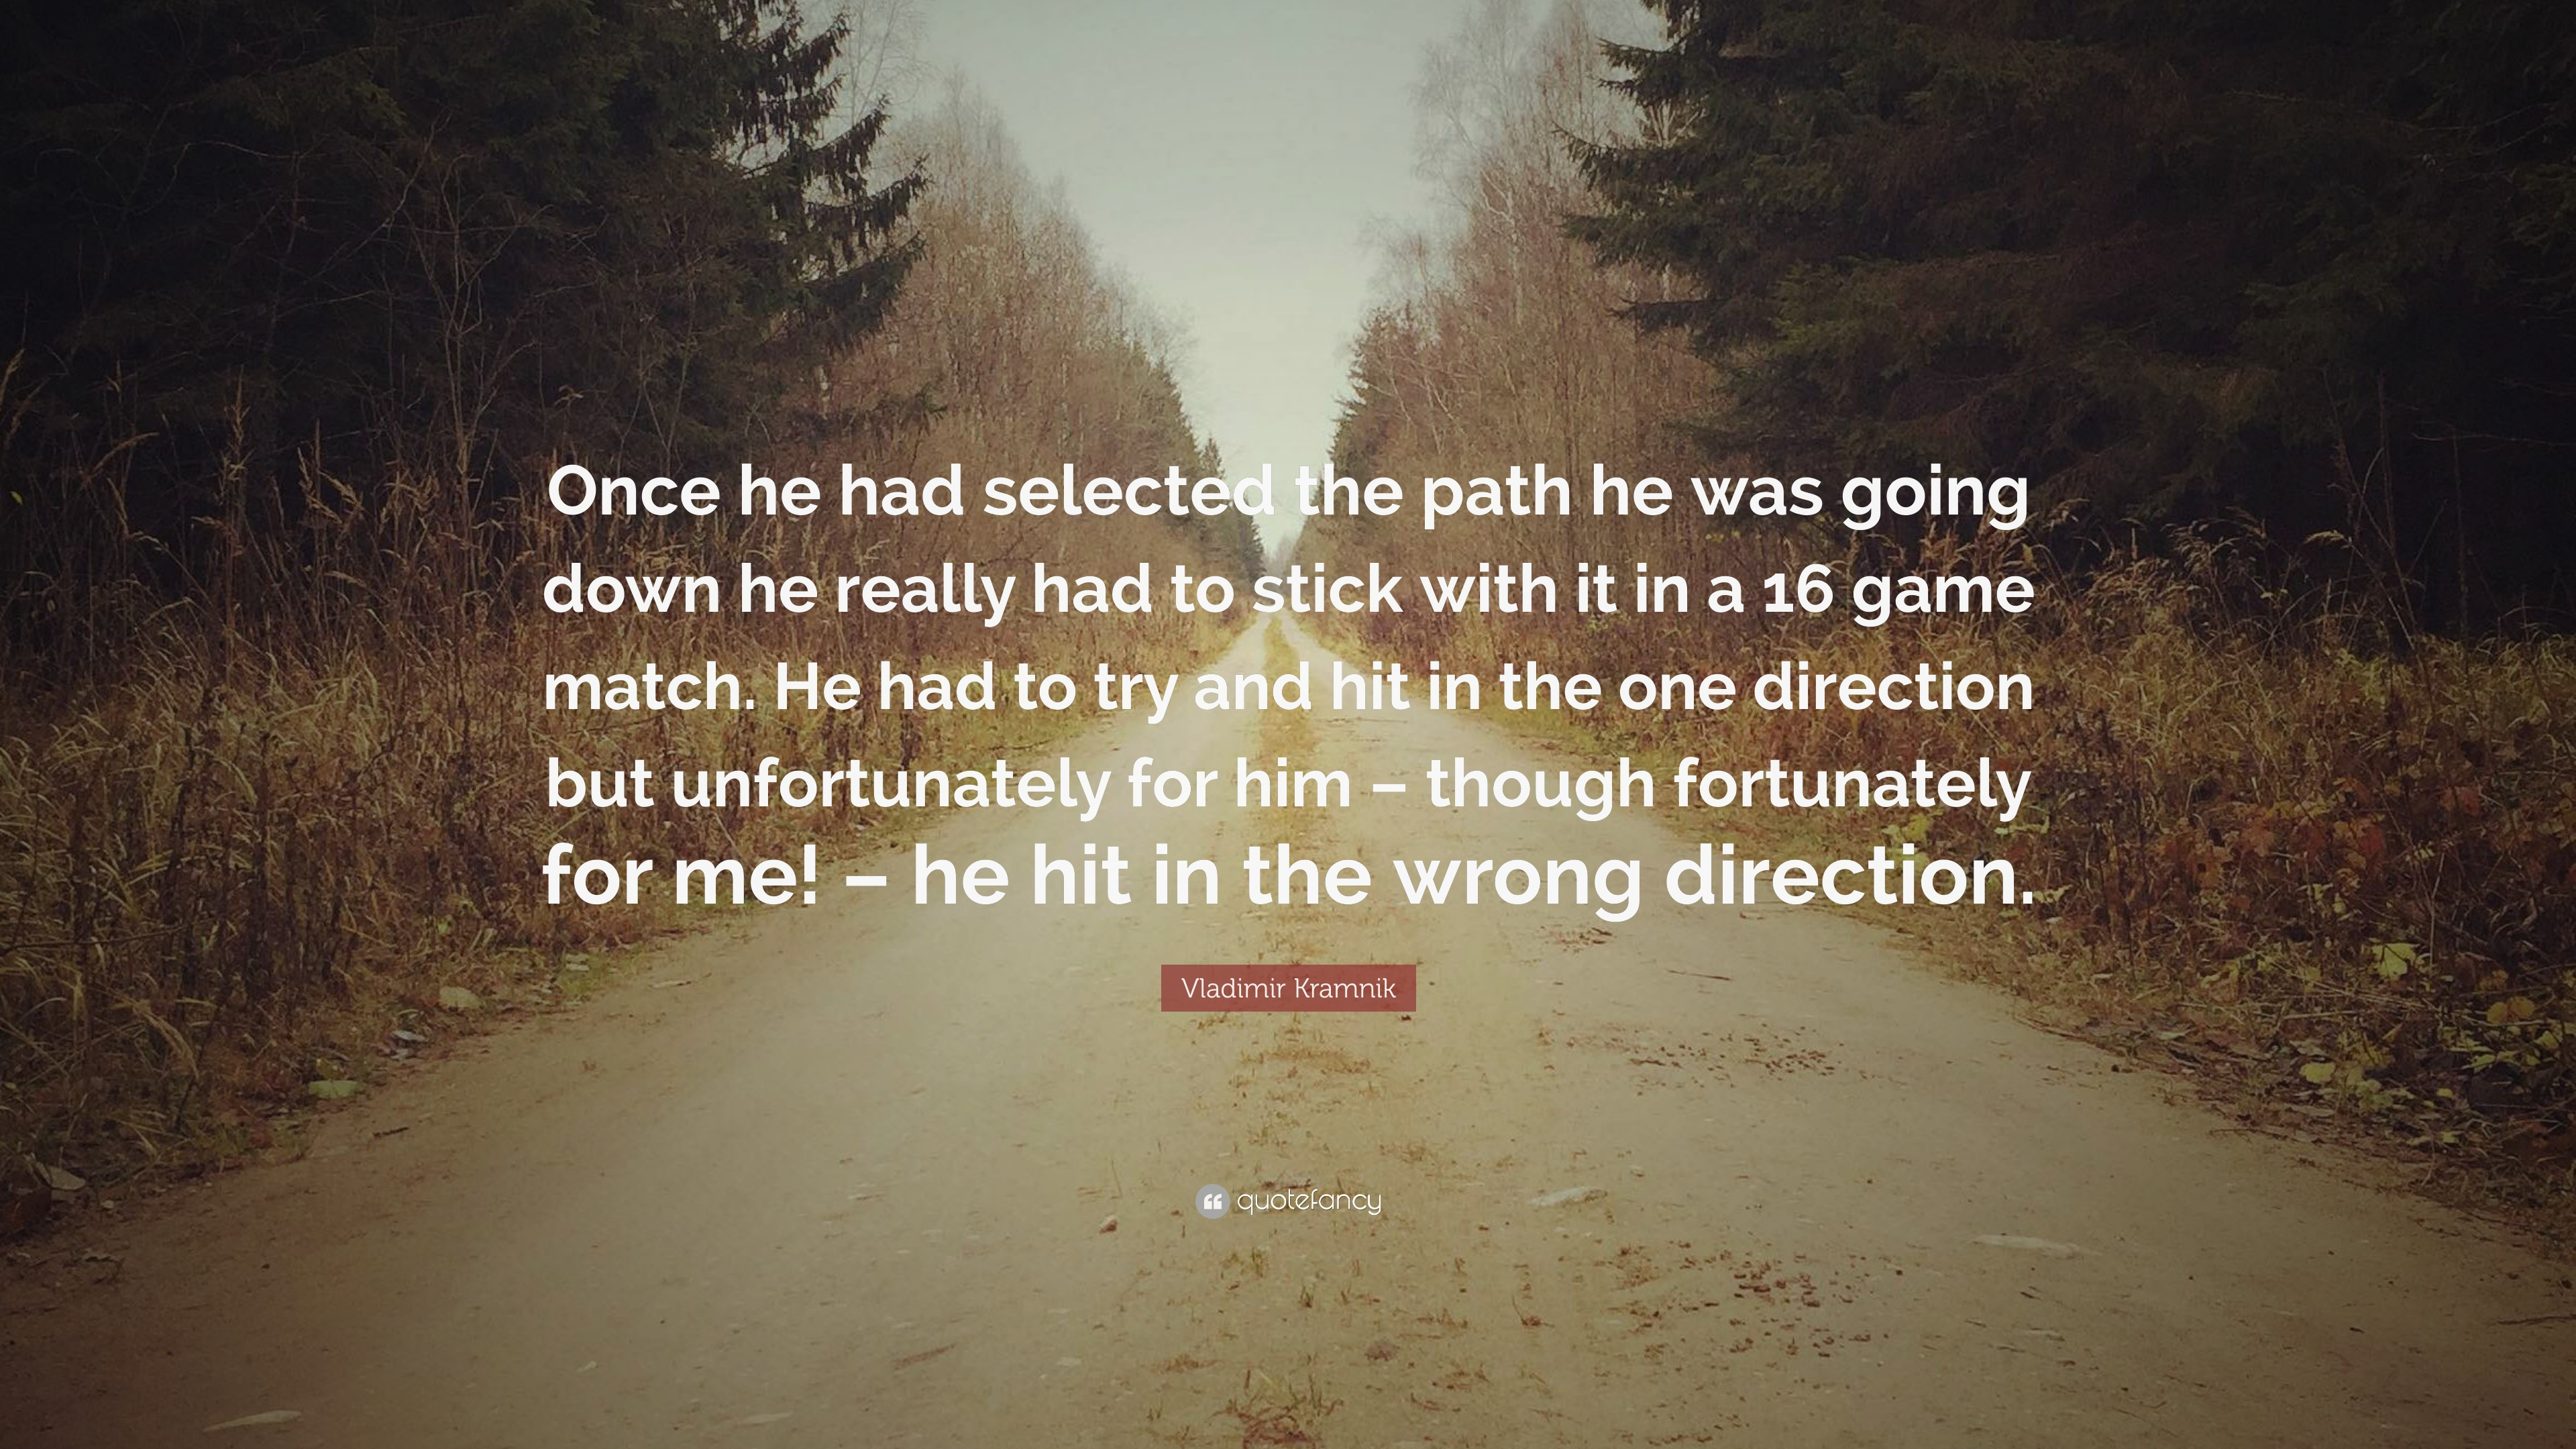 Going Down The Wrong Path Quotes: Vladimir Kramnik Quotes (40 Wallpapers)